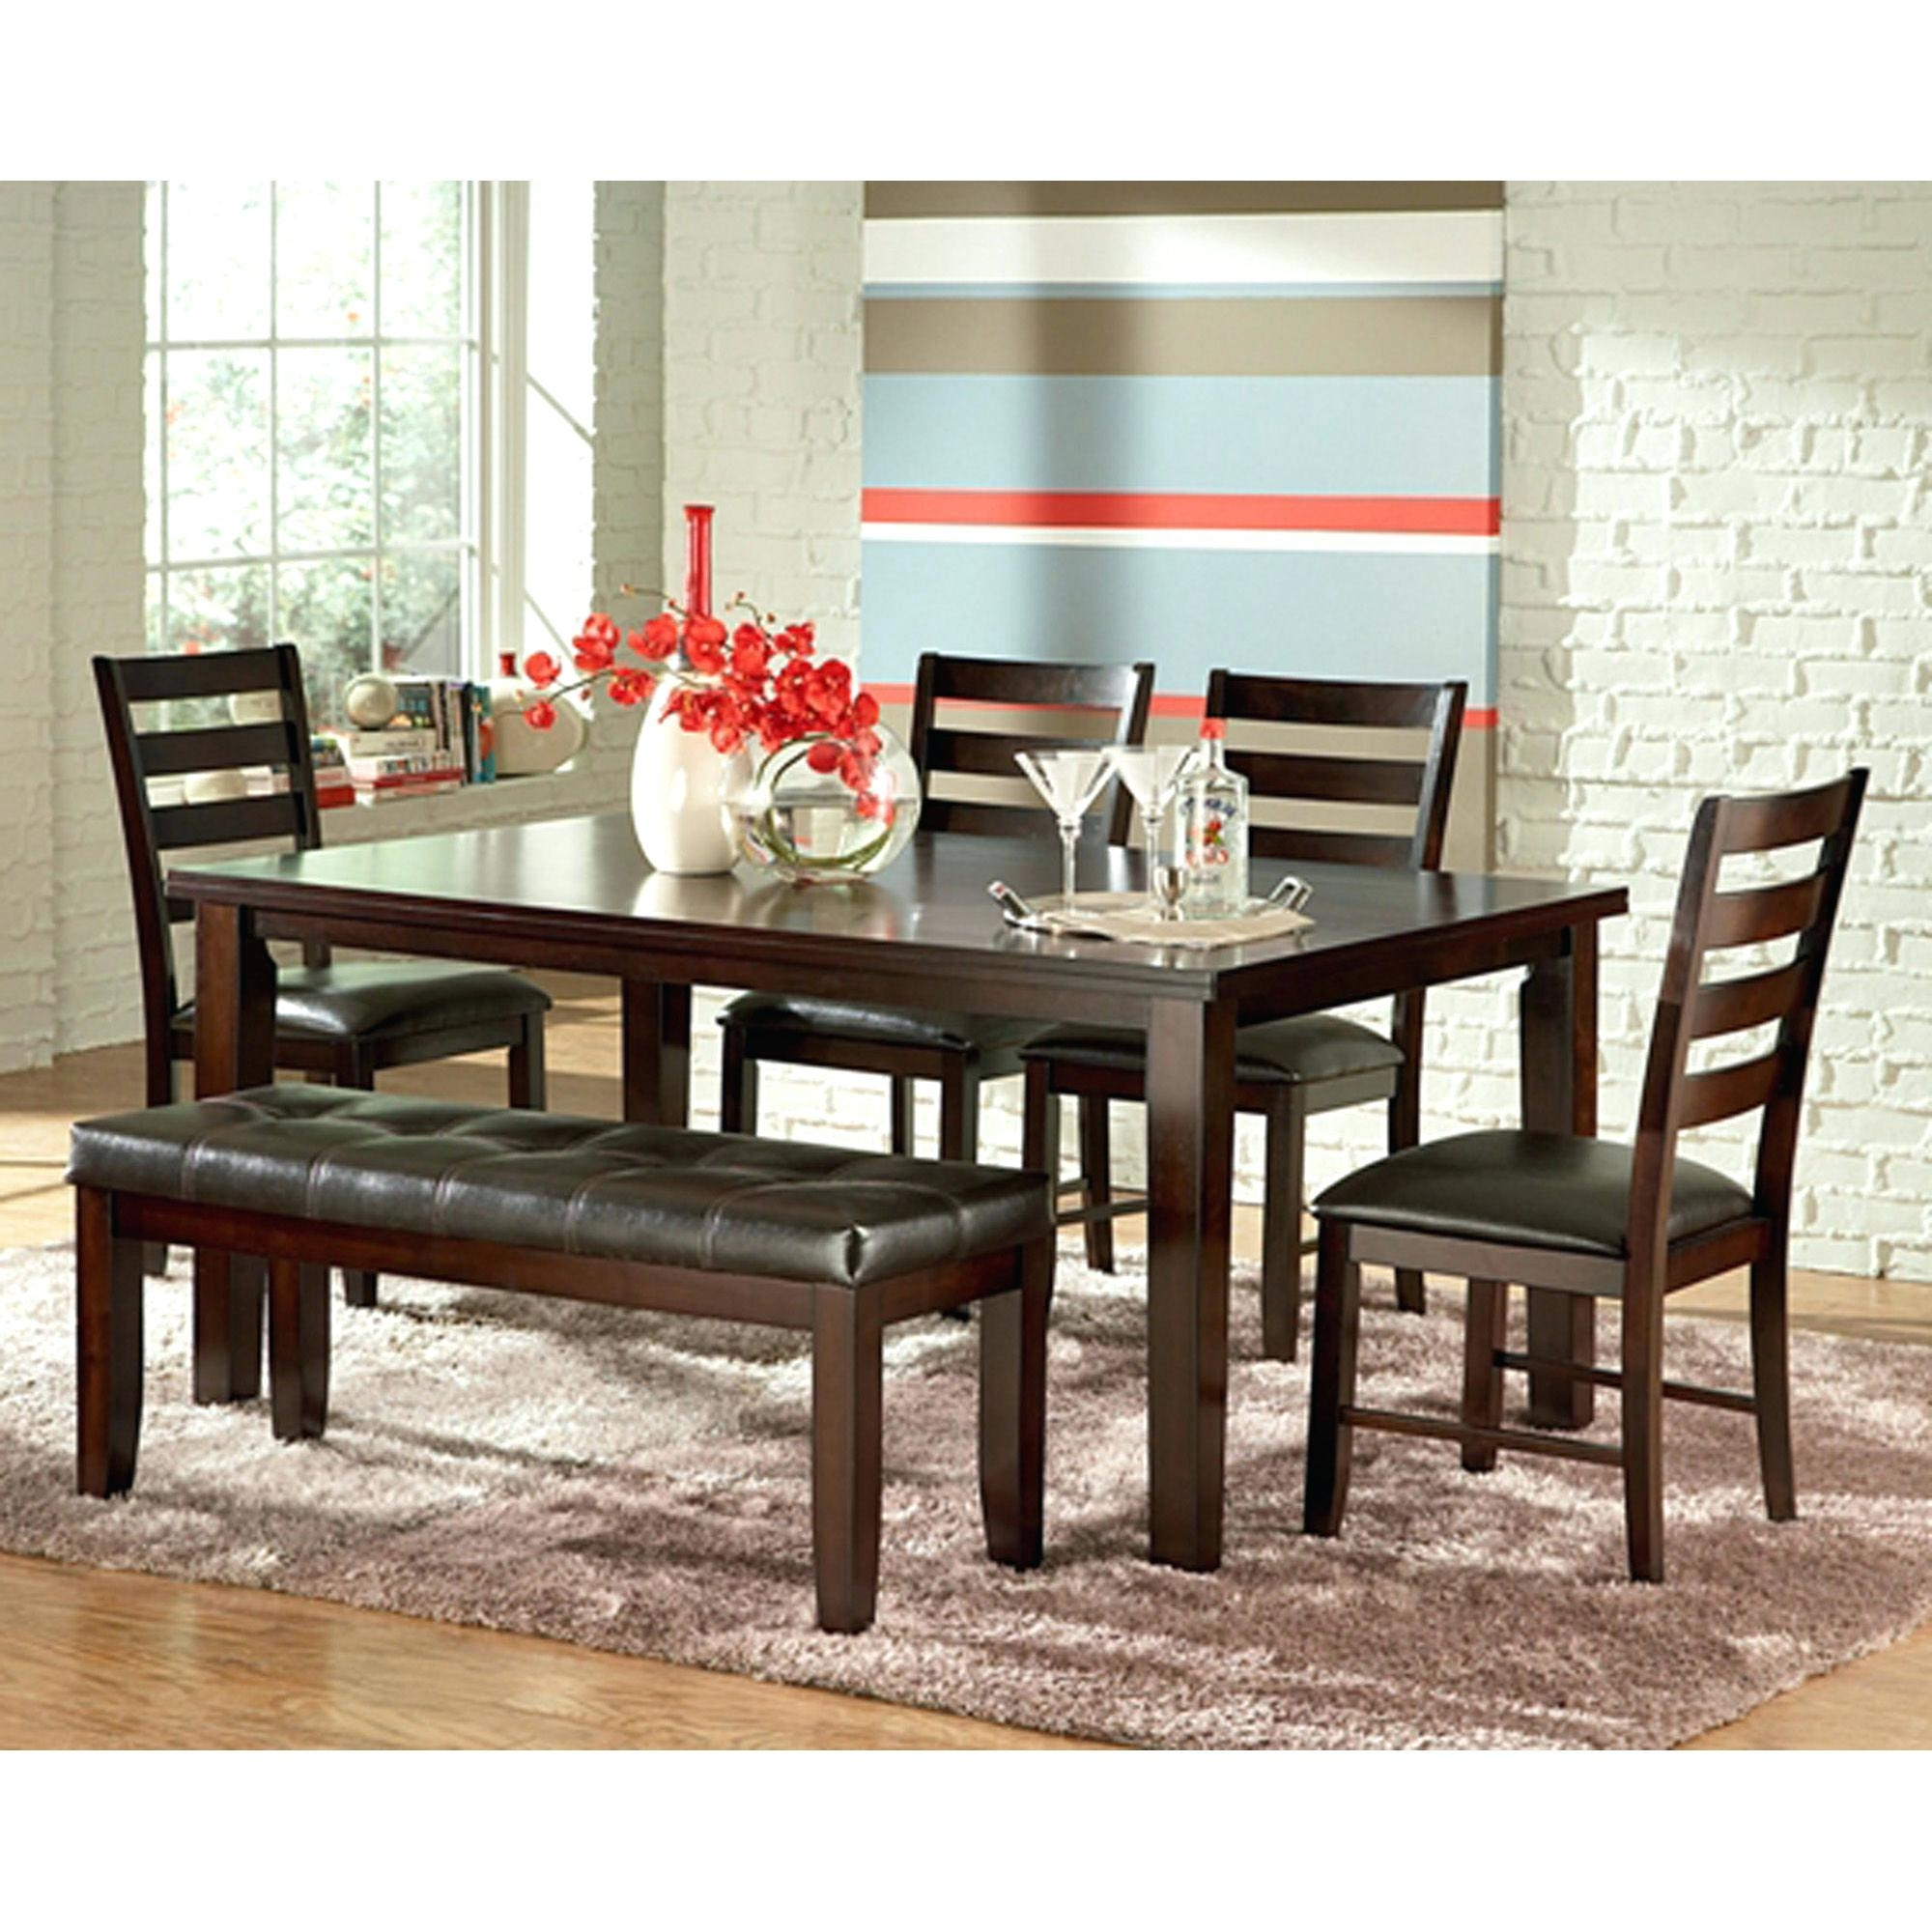 6 Piece Kitchen Table Mallard 6 Piece Extension Dining Set Inside Widely Used Mallard 6 Piece Extension Dining Sets (View 2 of 25)